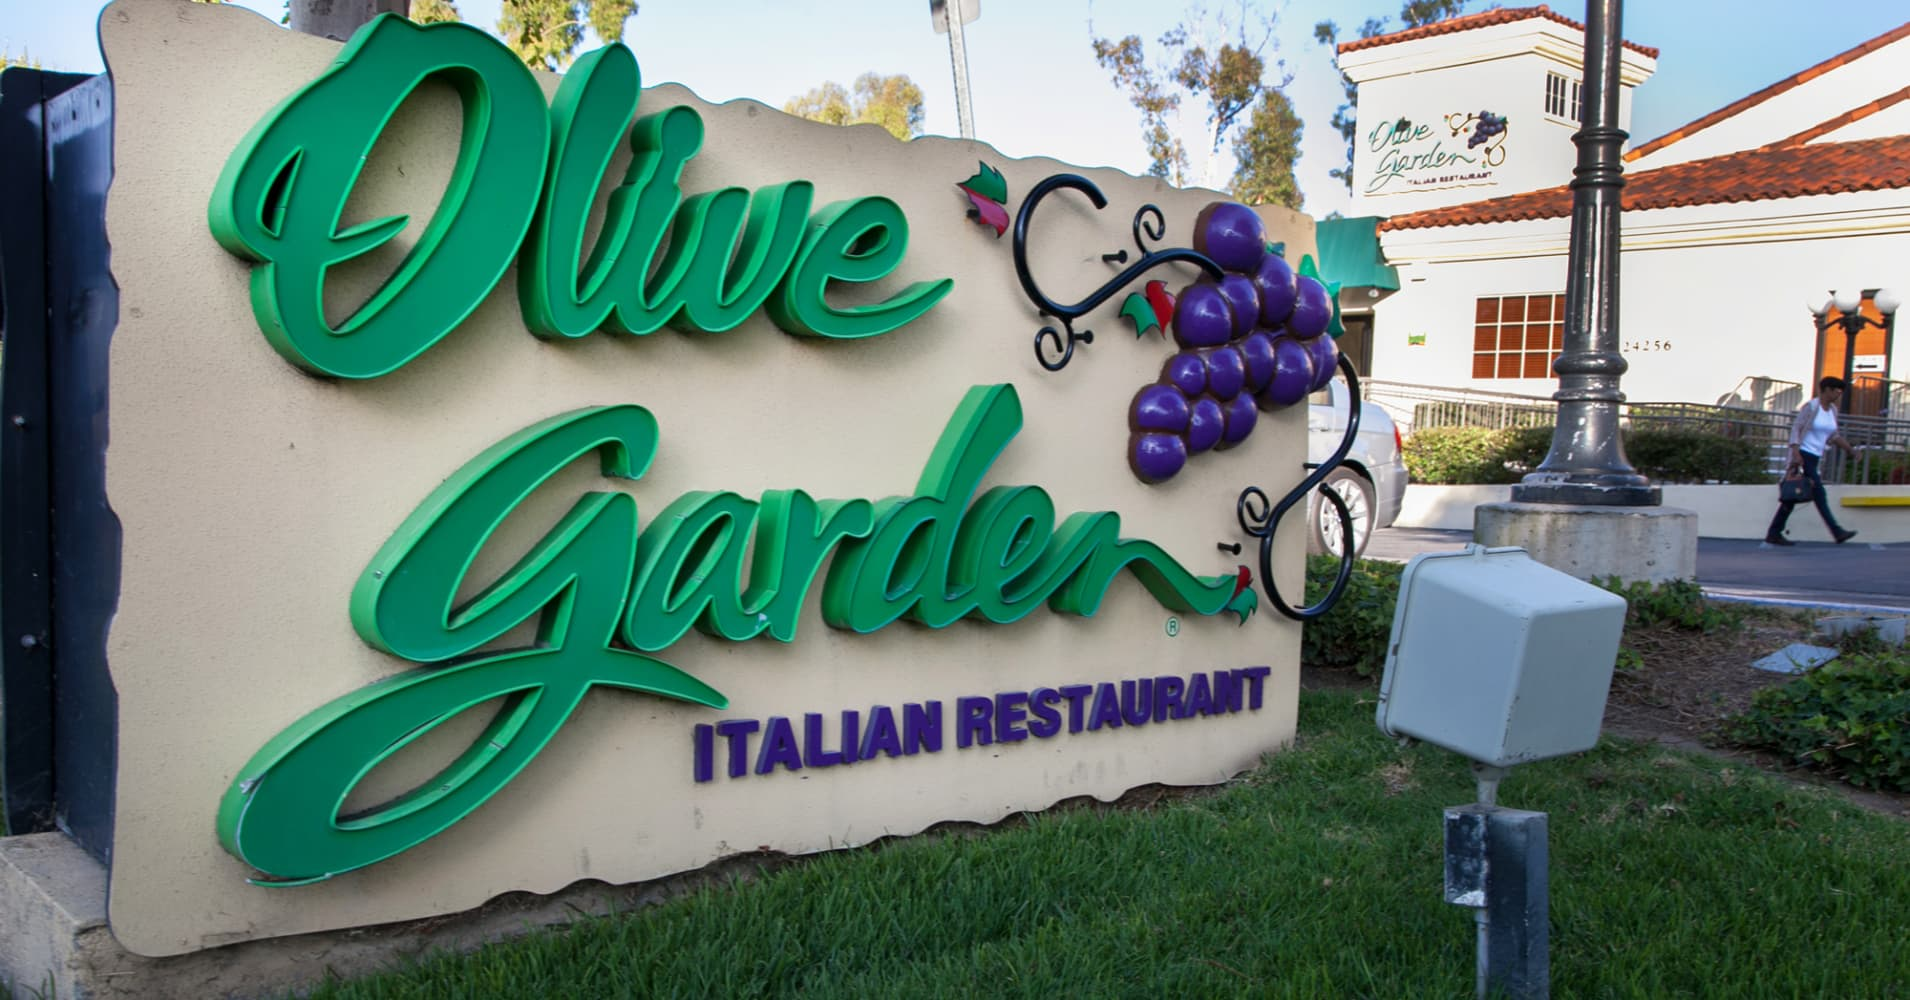 Shares of Olive Garden parent pop 4.3% on strong earnings beat